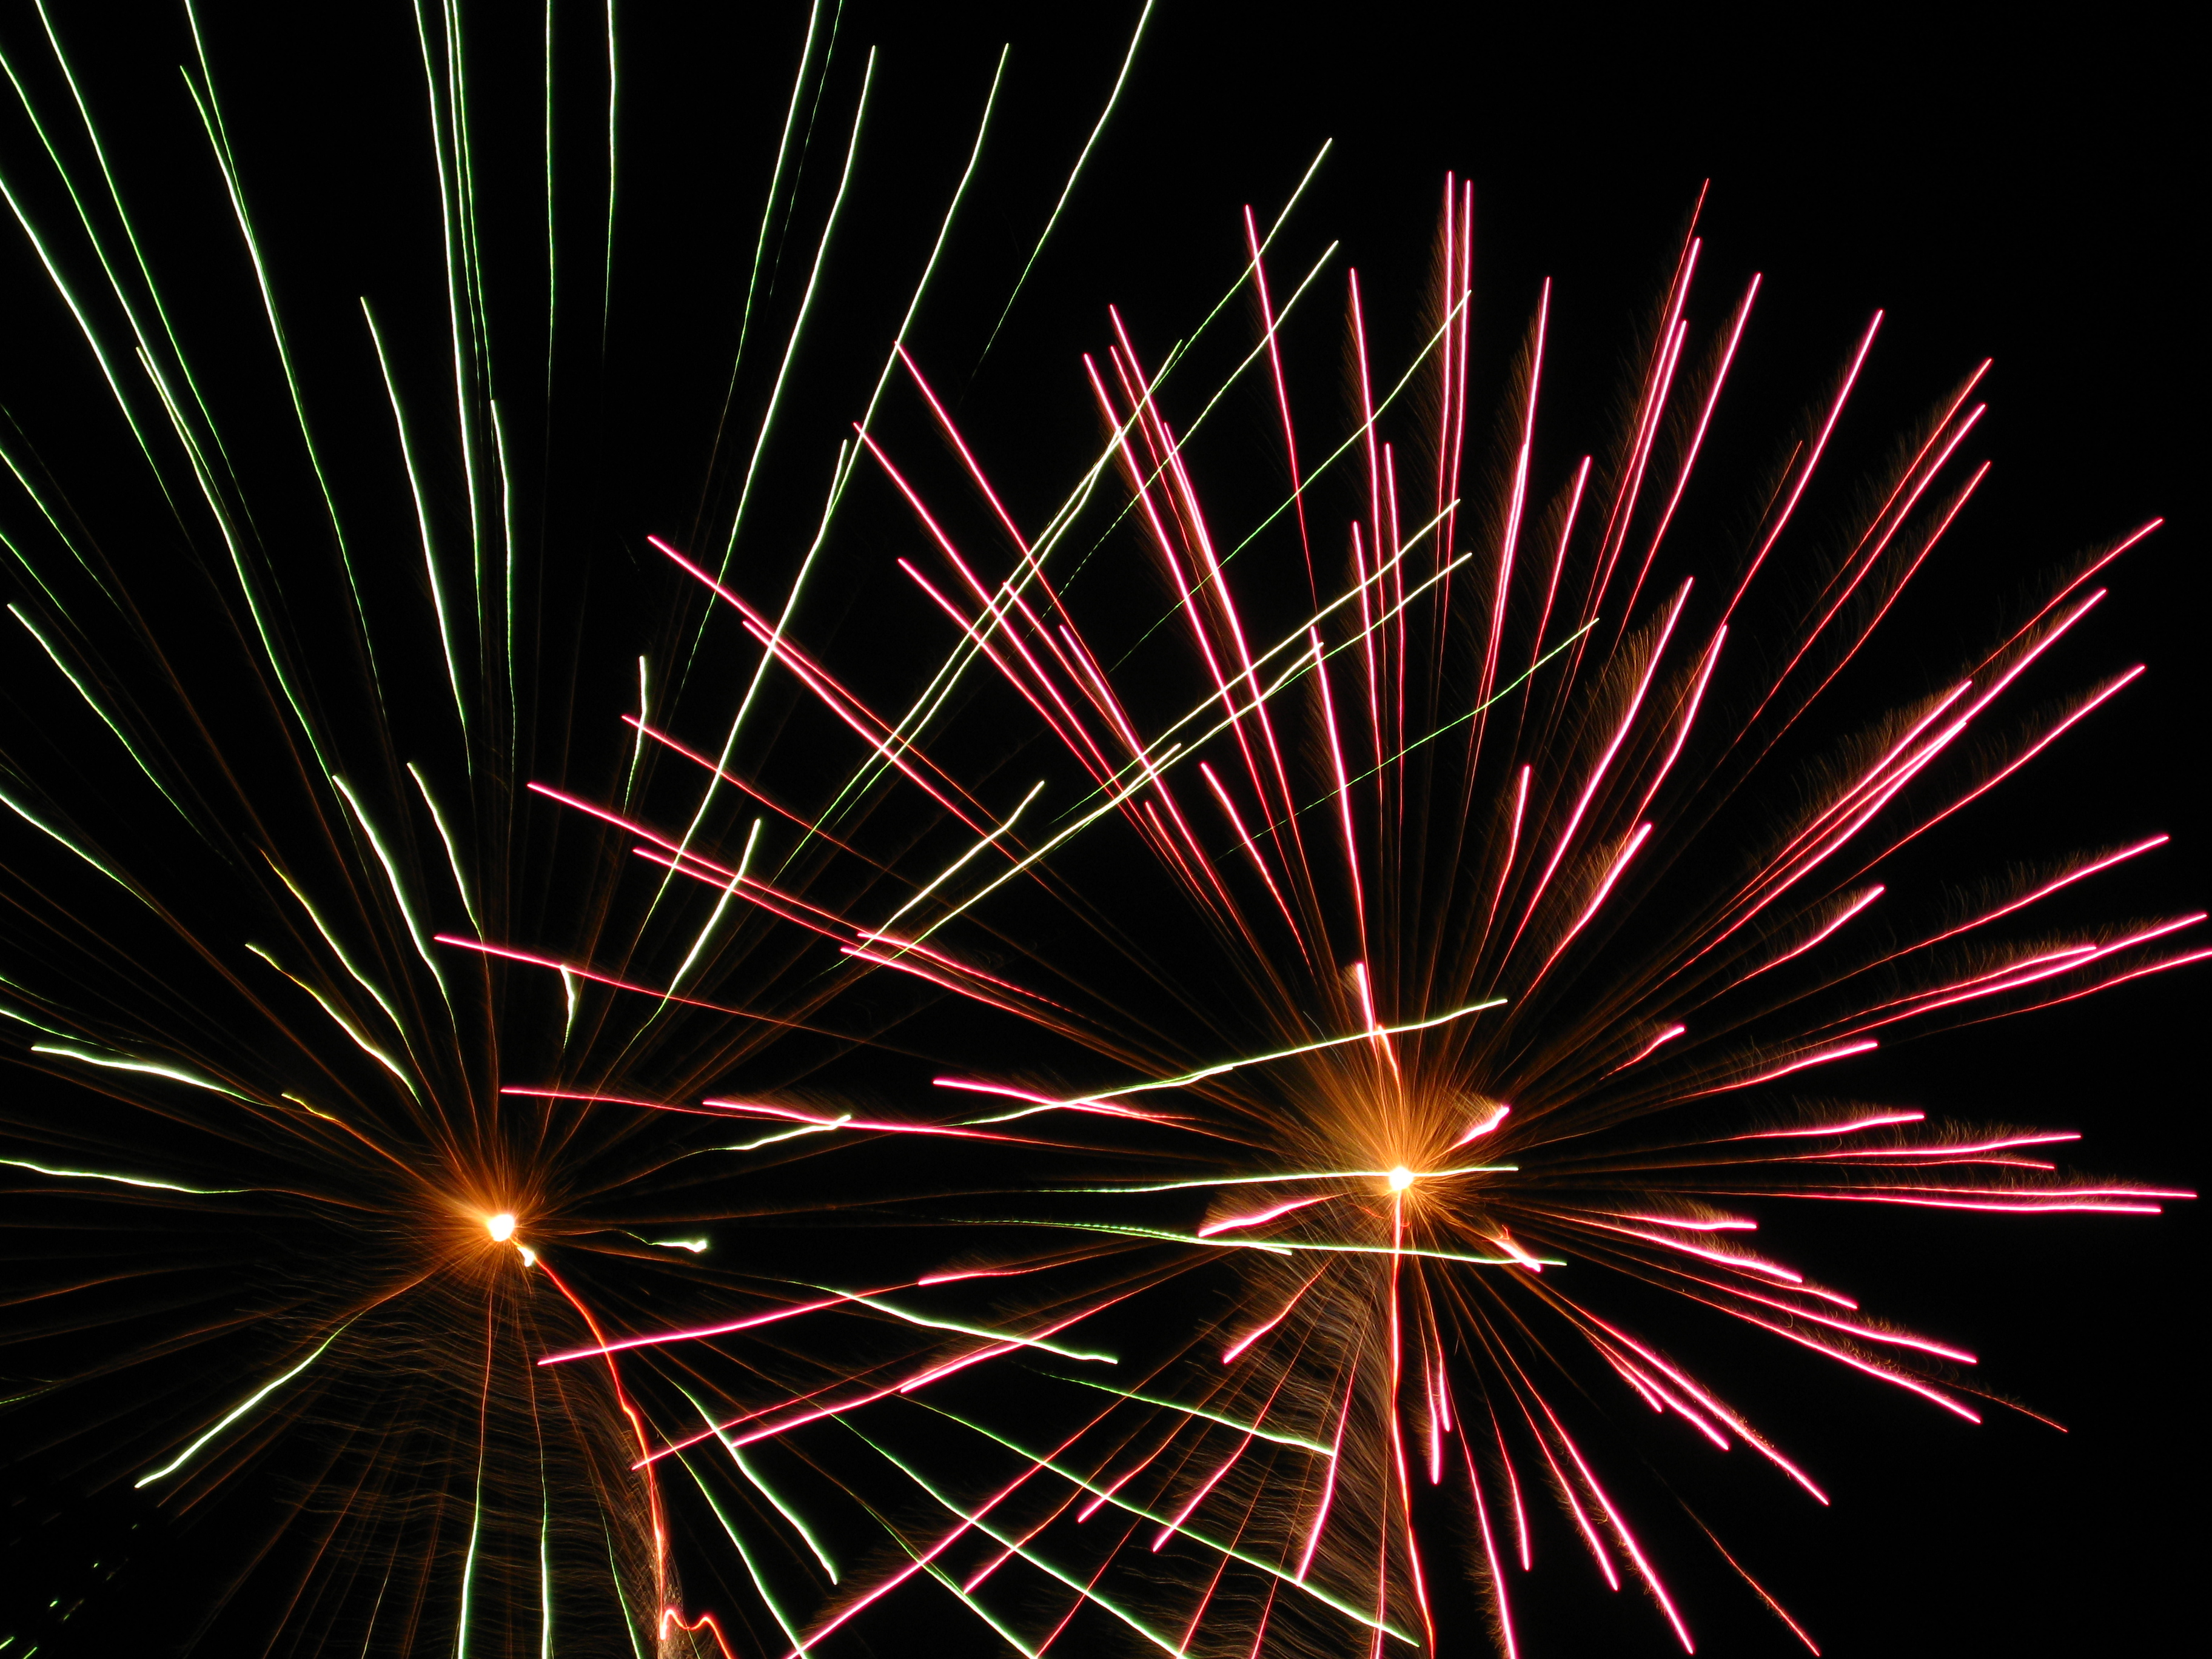 File:Independence Day Fireworks 2.jpg - Wikimedia Commons